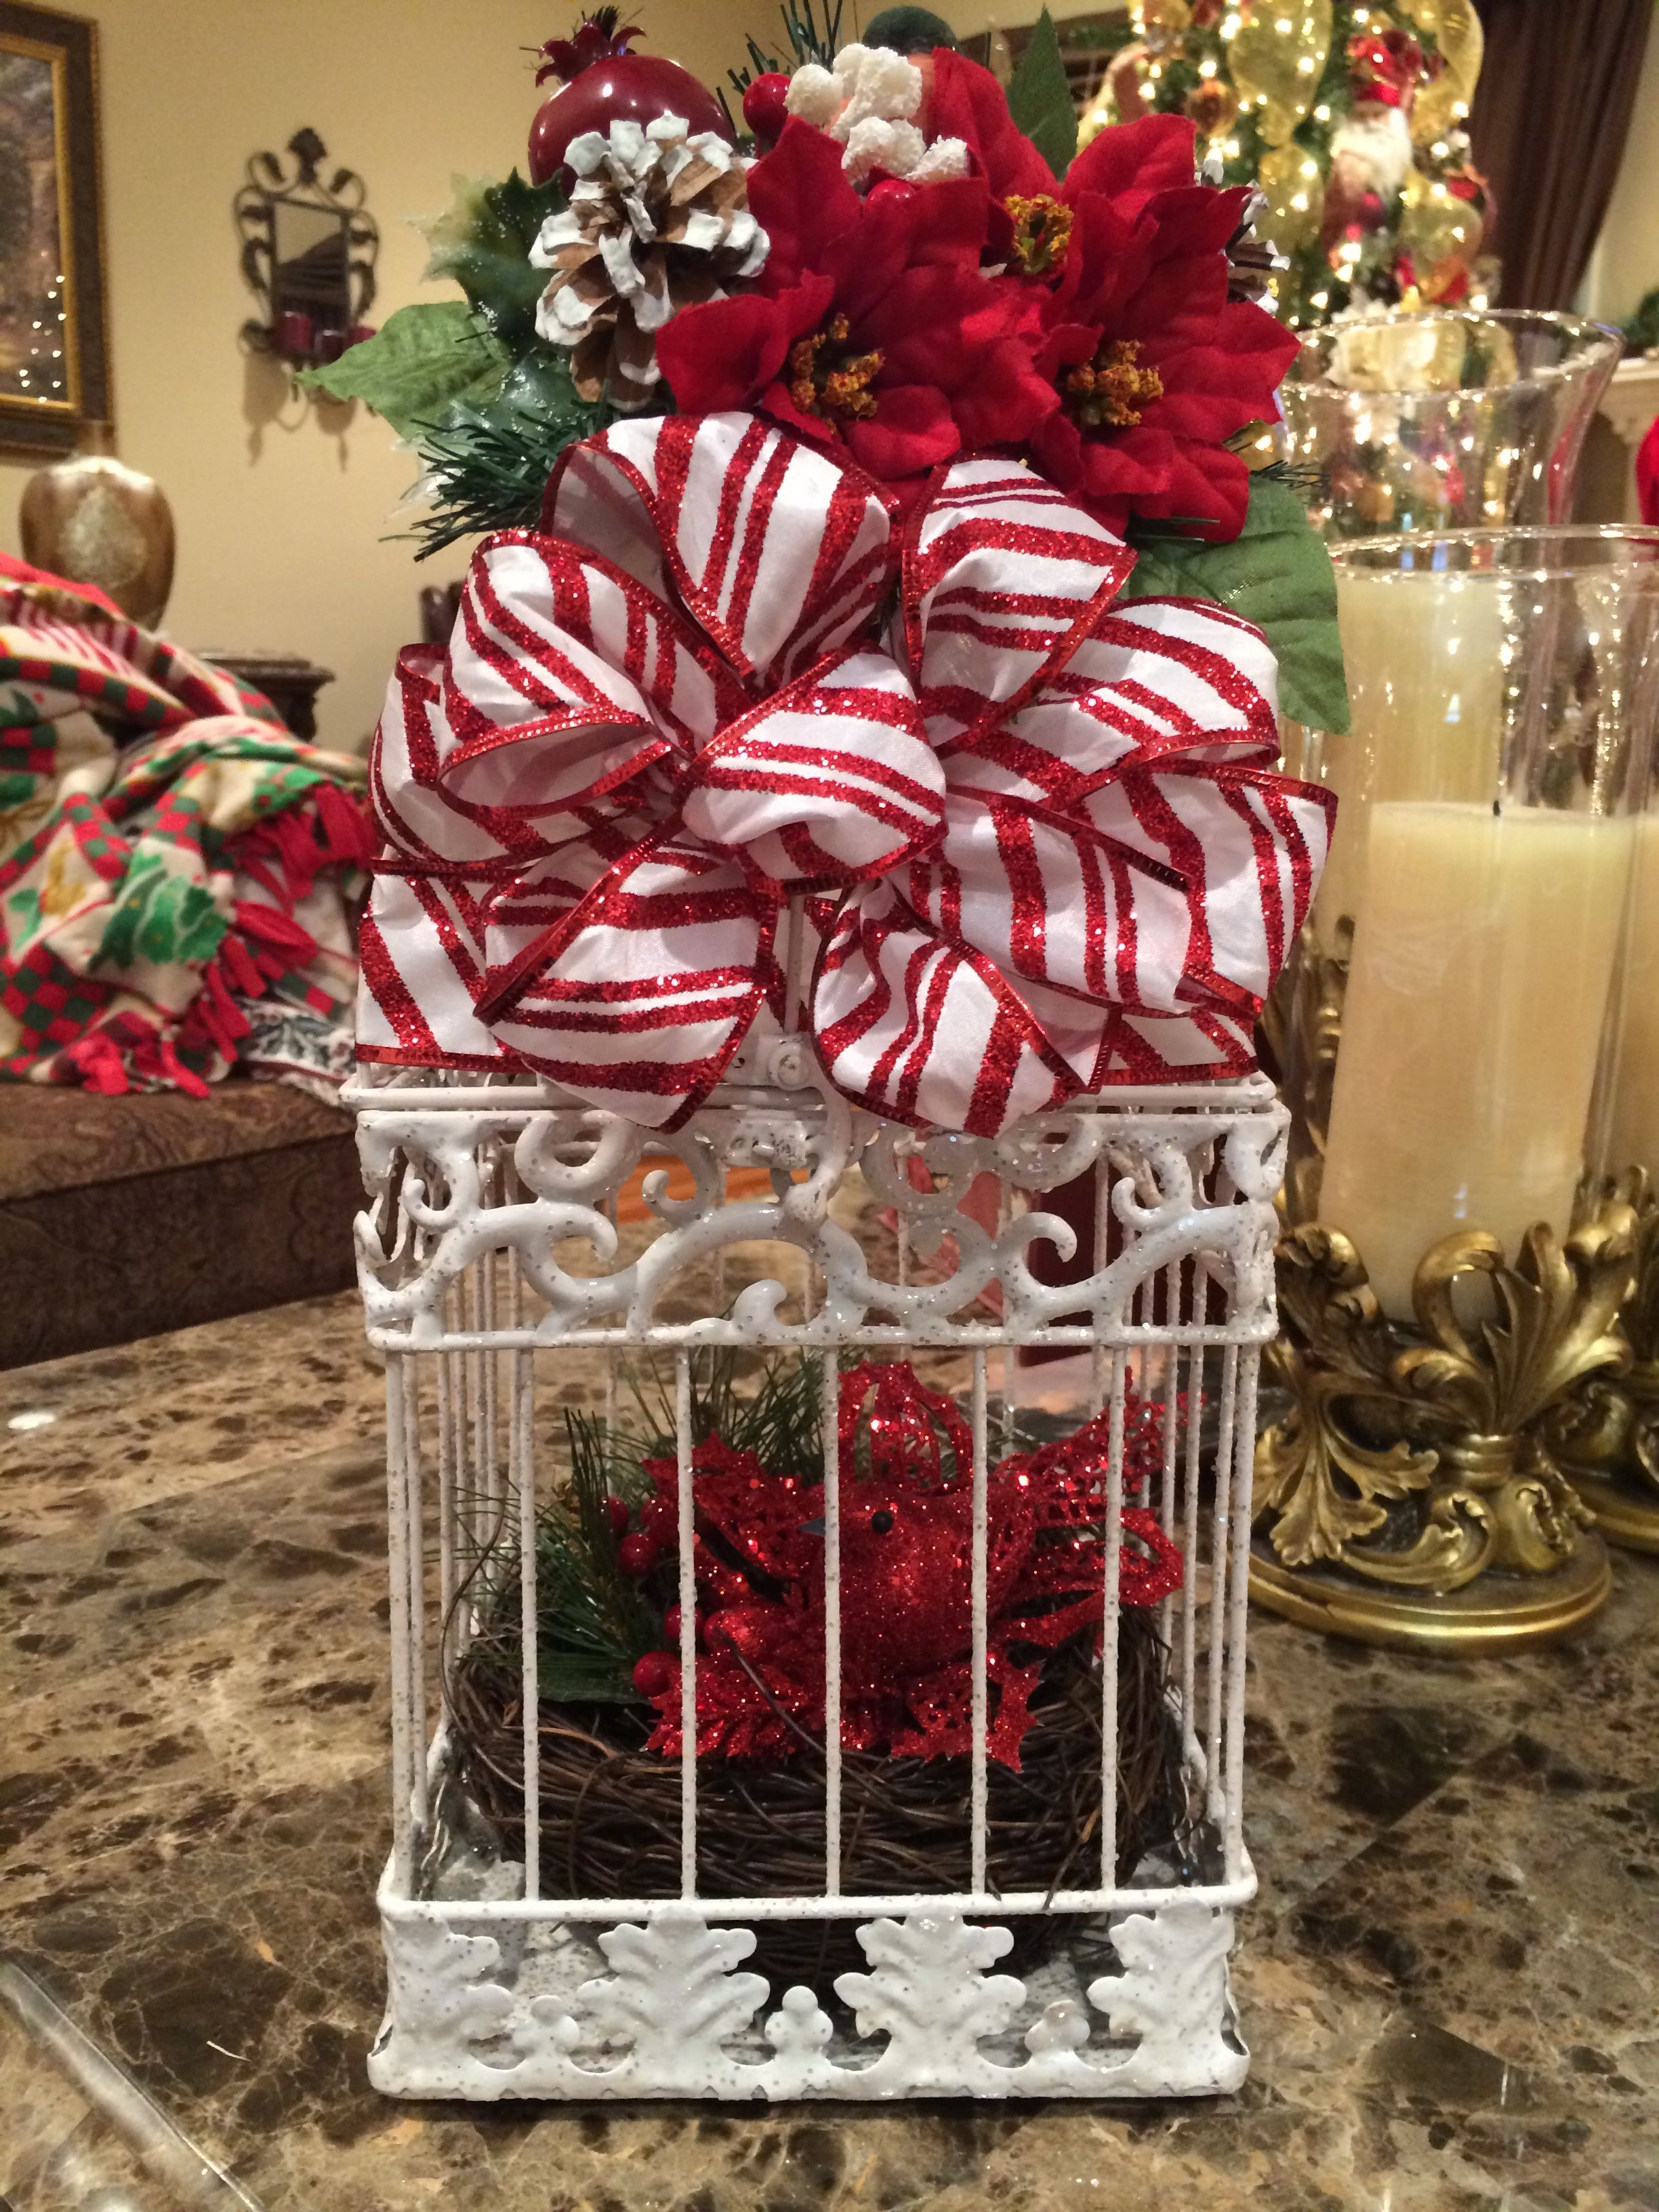 Plane Bird Cage I Bought At Michaels Added Christmas Picks